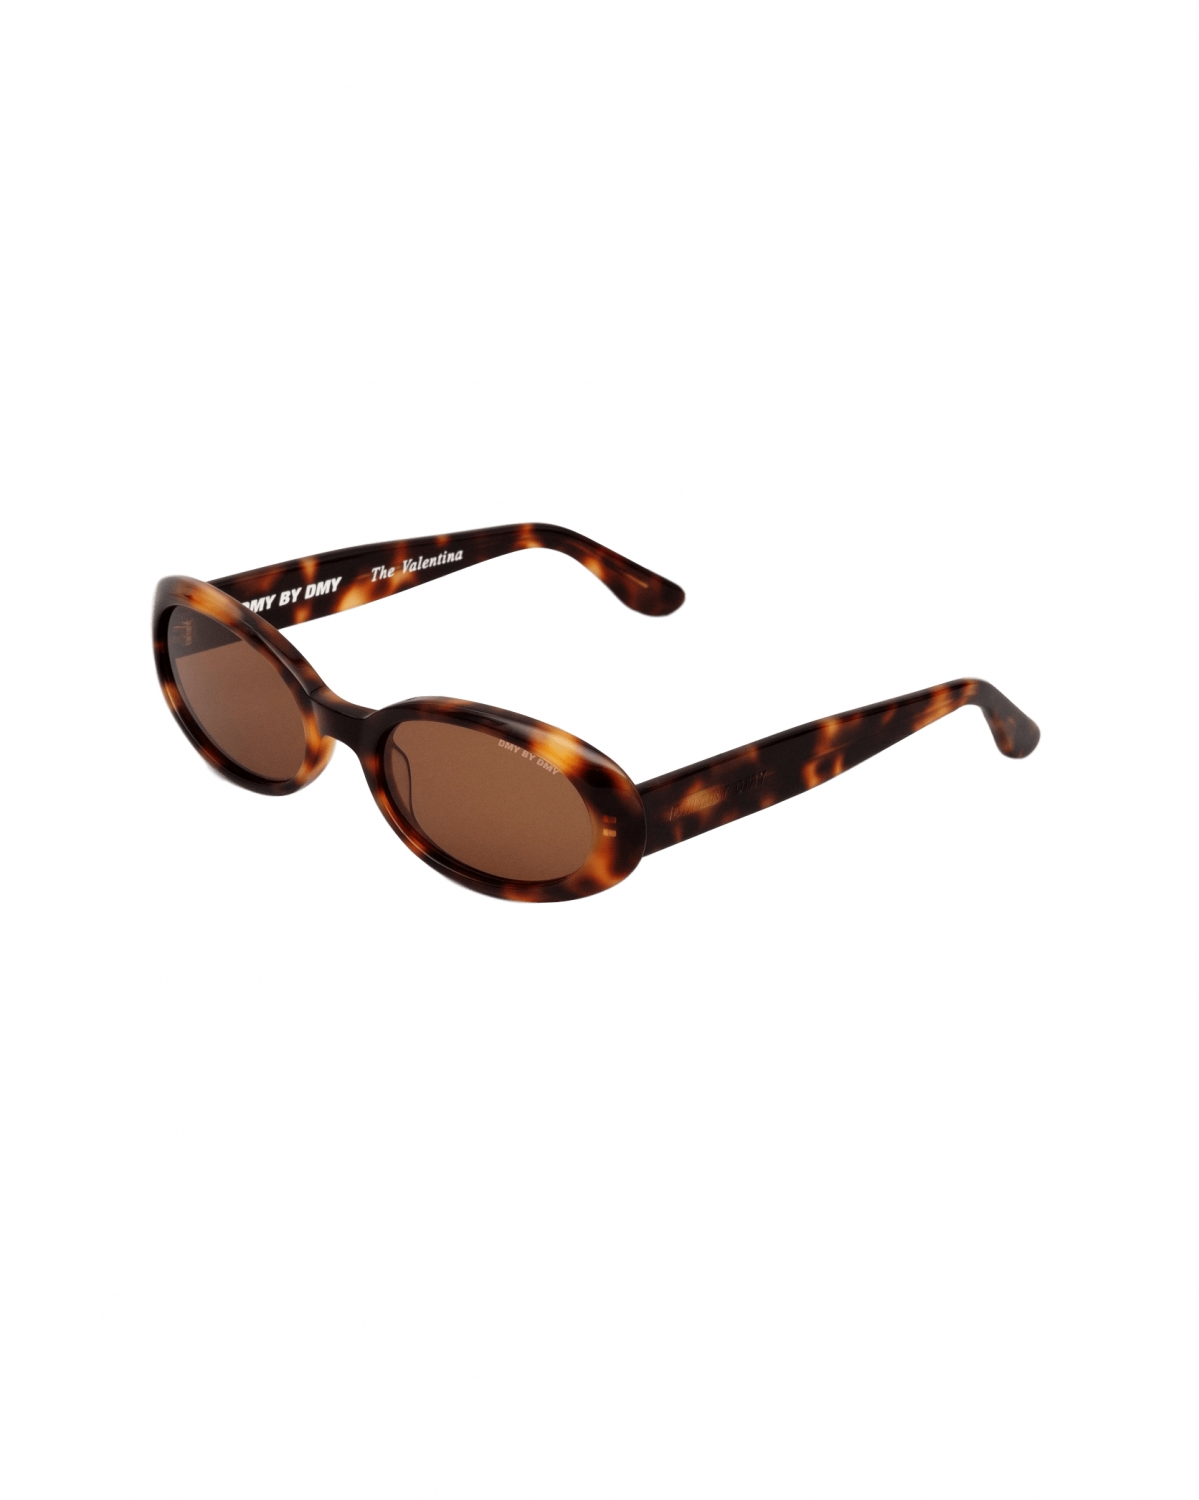 Valentina (Havana) by Dmy by Dmy, available on dmybydmy.com for EUR130 Kendall Jenner Sunglasses Exact Product